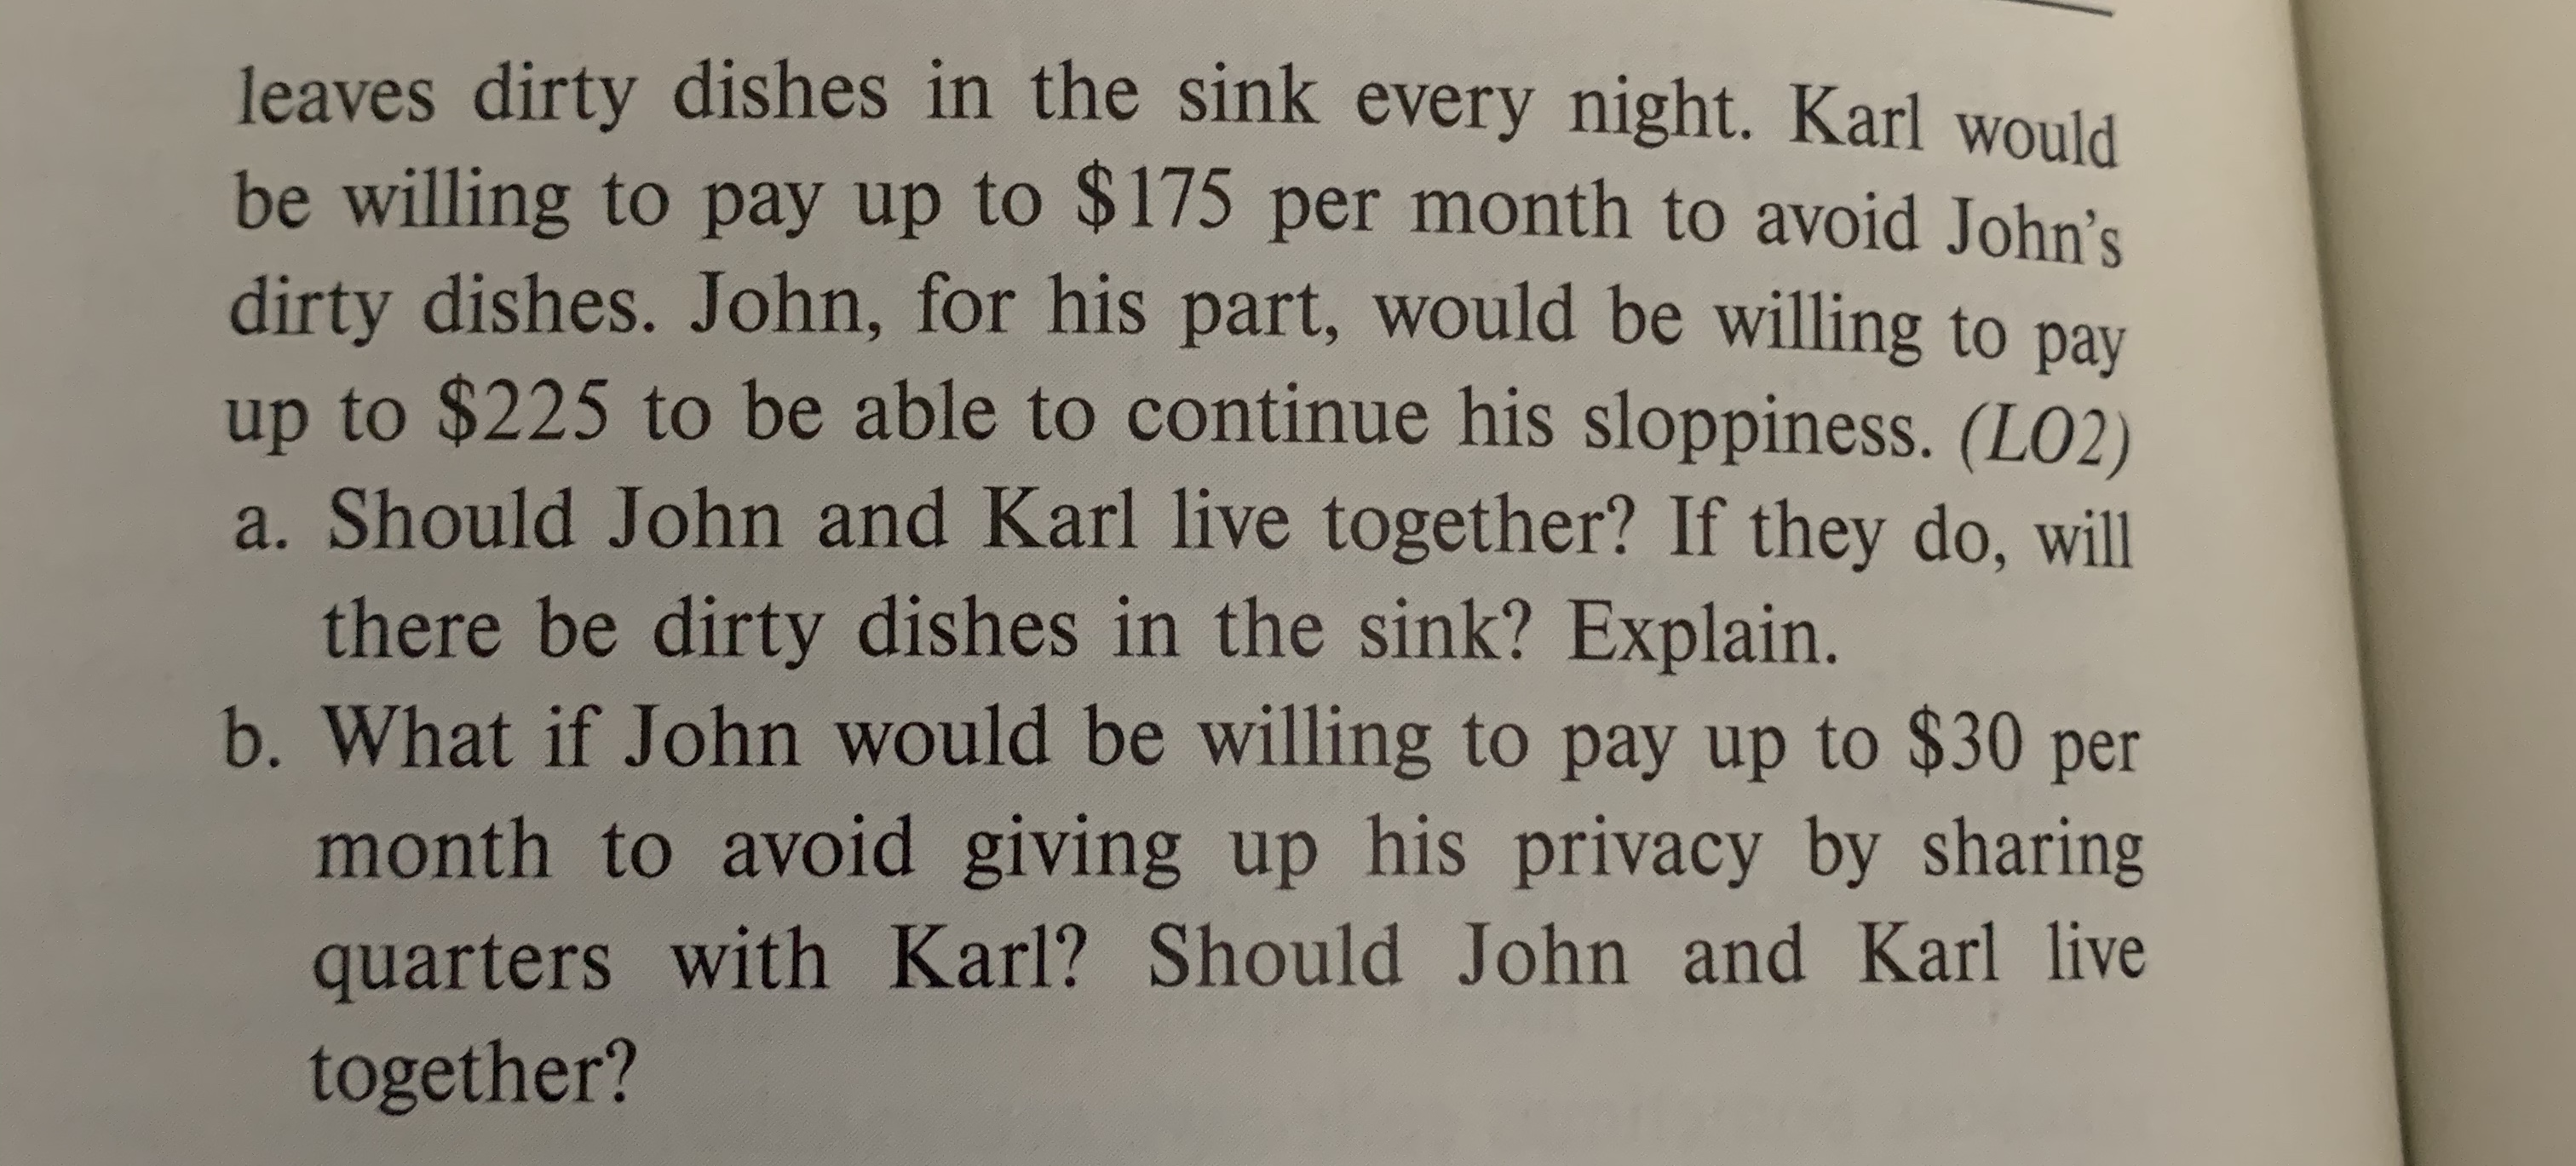 leaves dirty dishes in the sink every night. Karl would be willing to pay up to $175 per month to avoid John's dirty dishes. John, for his part, would be willing to pay up to $225 to be able to continue his sloppiness. (LO2) a. Should John and Karl live together? If they do, will there be dirty dishes in the sink? Explain. b.What if John would be willing to pay up to $30 per month to avoid giving up his privacy by sharing quarters with Karl? Should John and Karl live together?